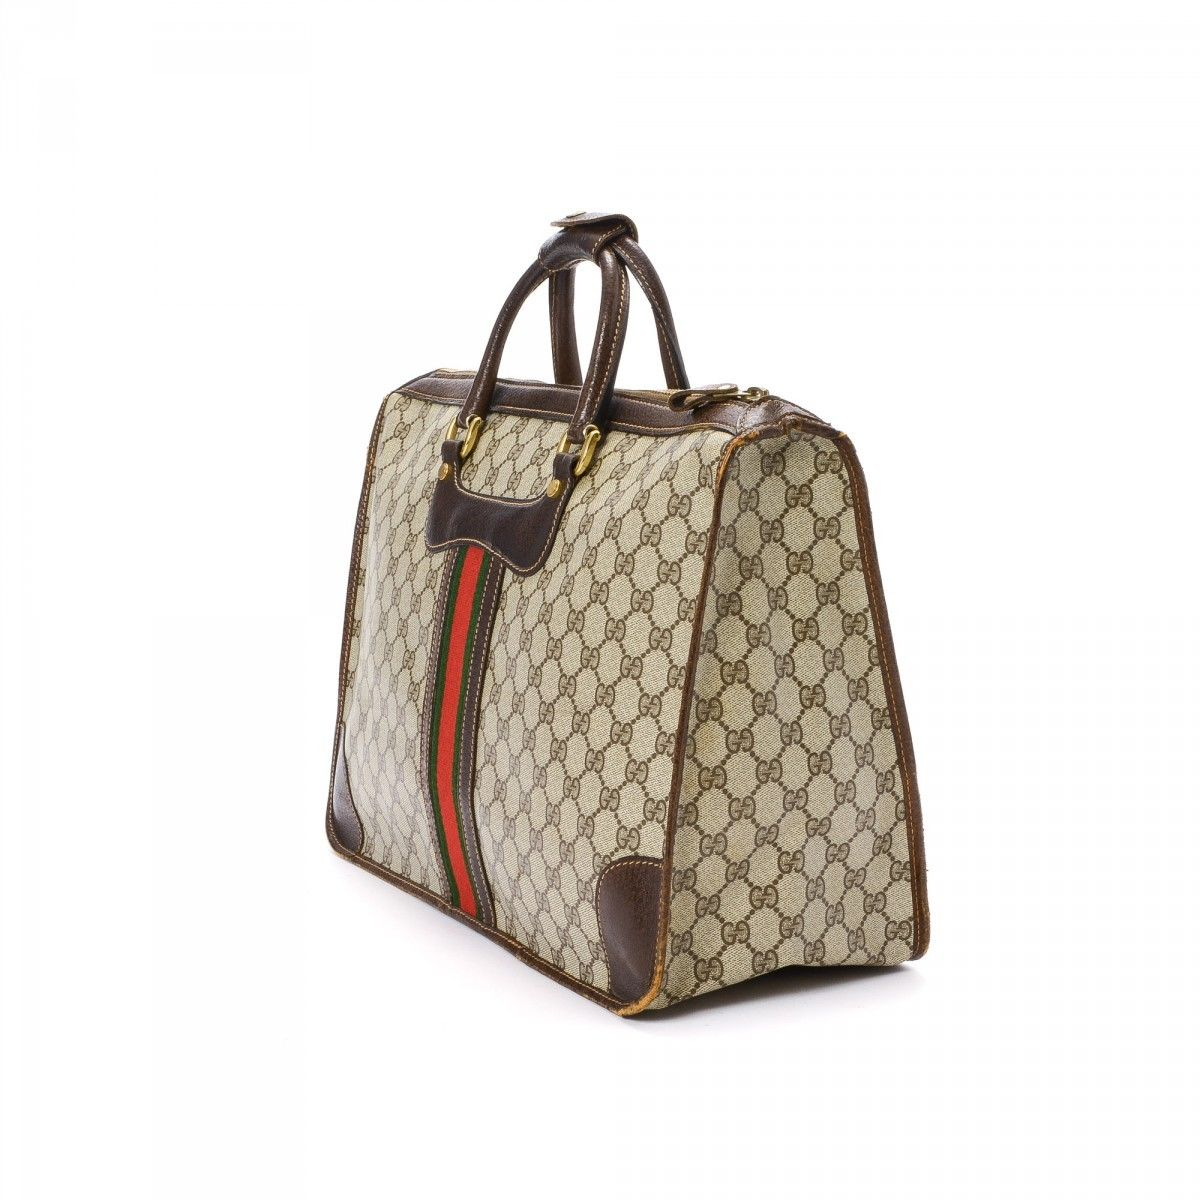 cc4ff796b80f Gucci Business Bag. The authenticity of this vintage Gucci Business Bag  briefcase is guaranteed by LXRandCo. Crafted in gg coated canvas ...